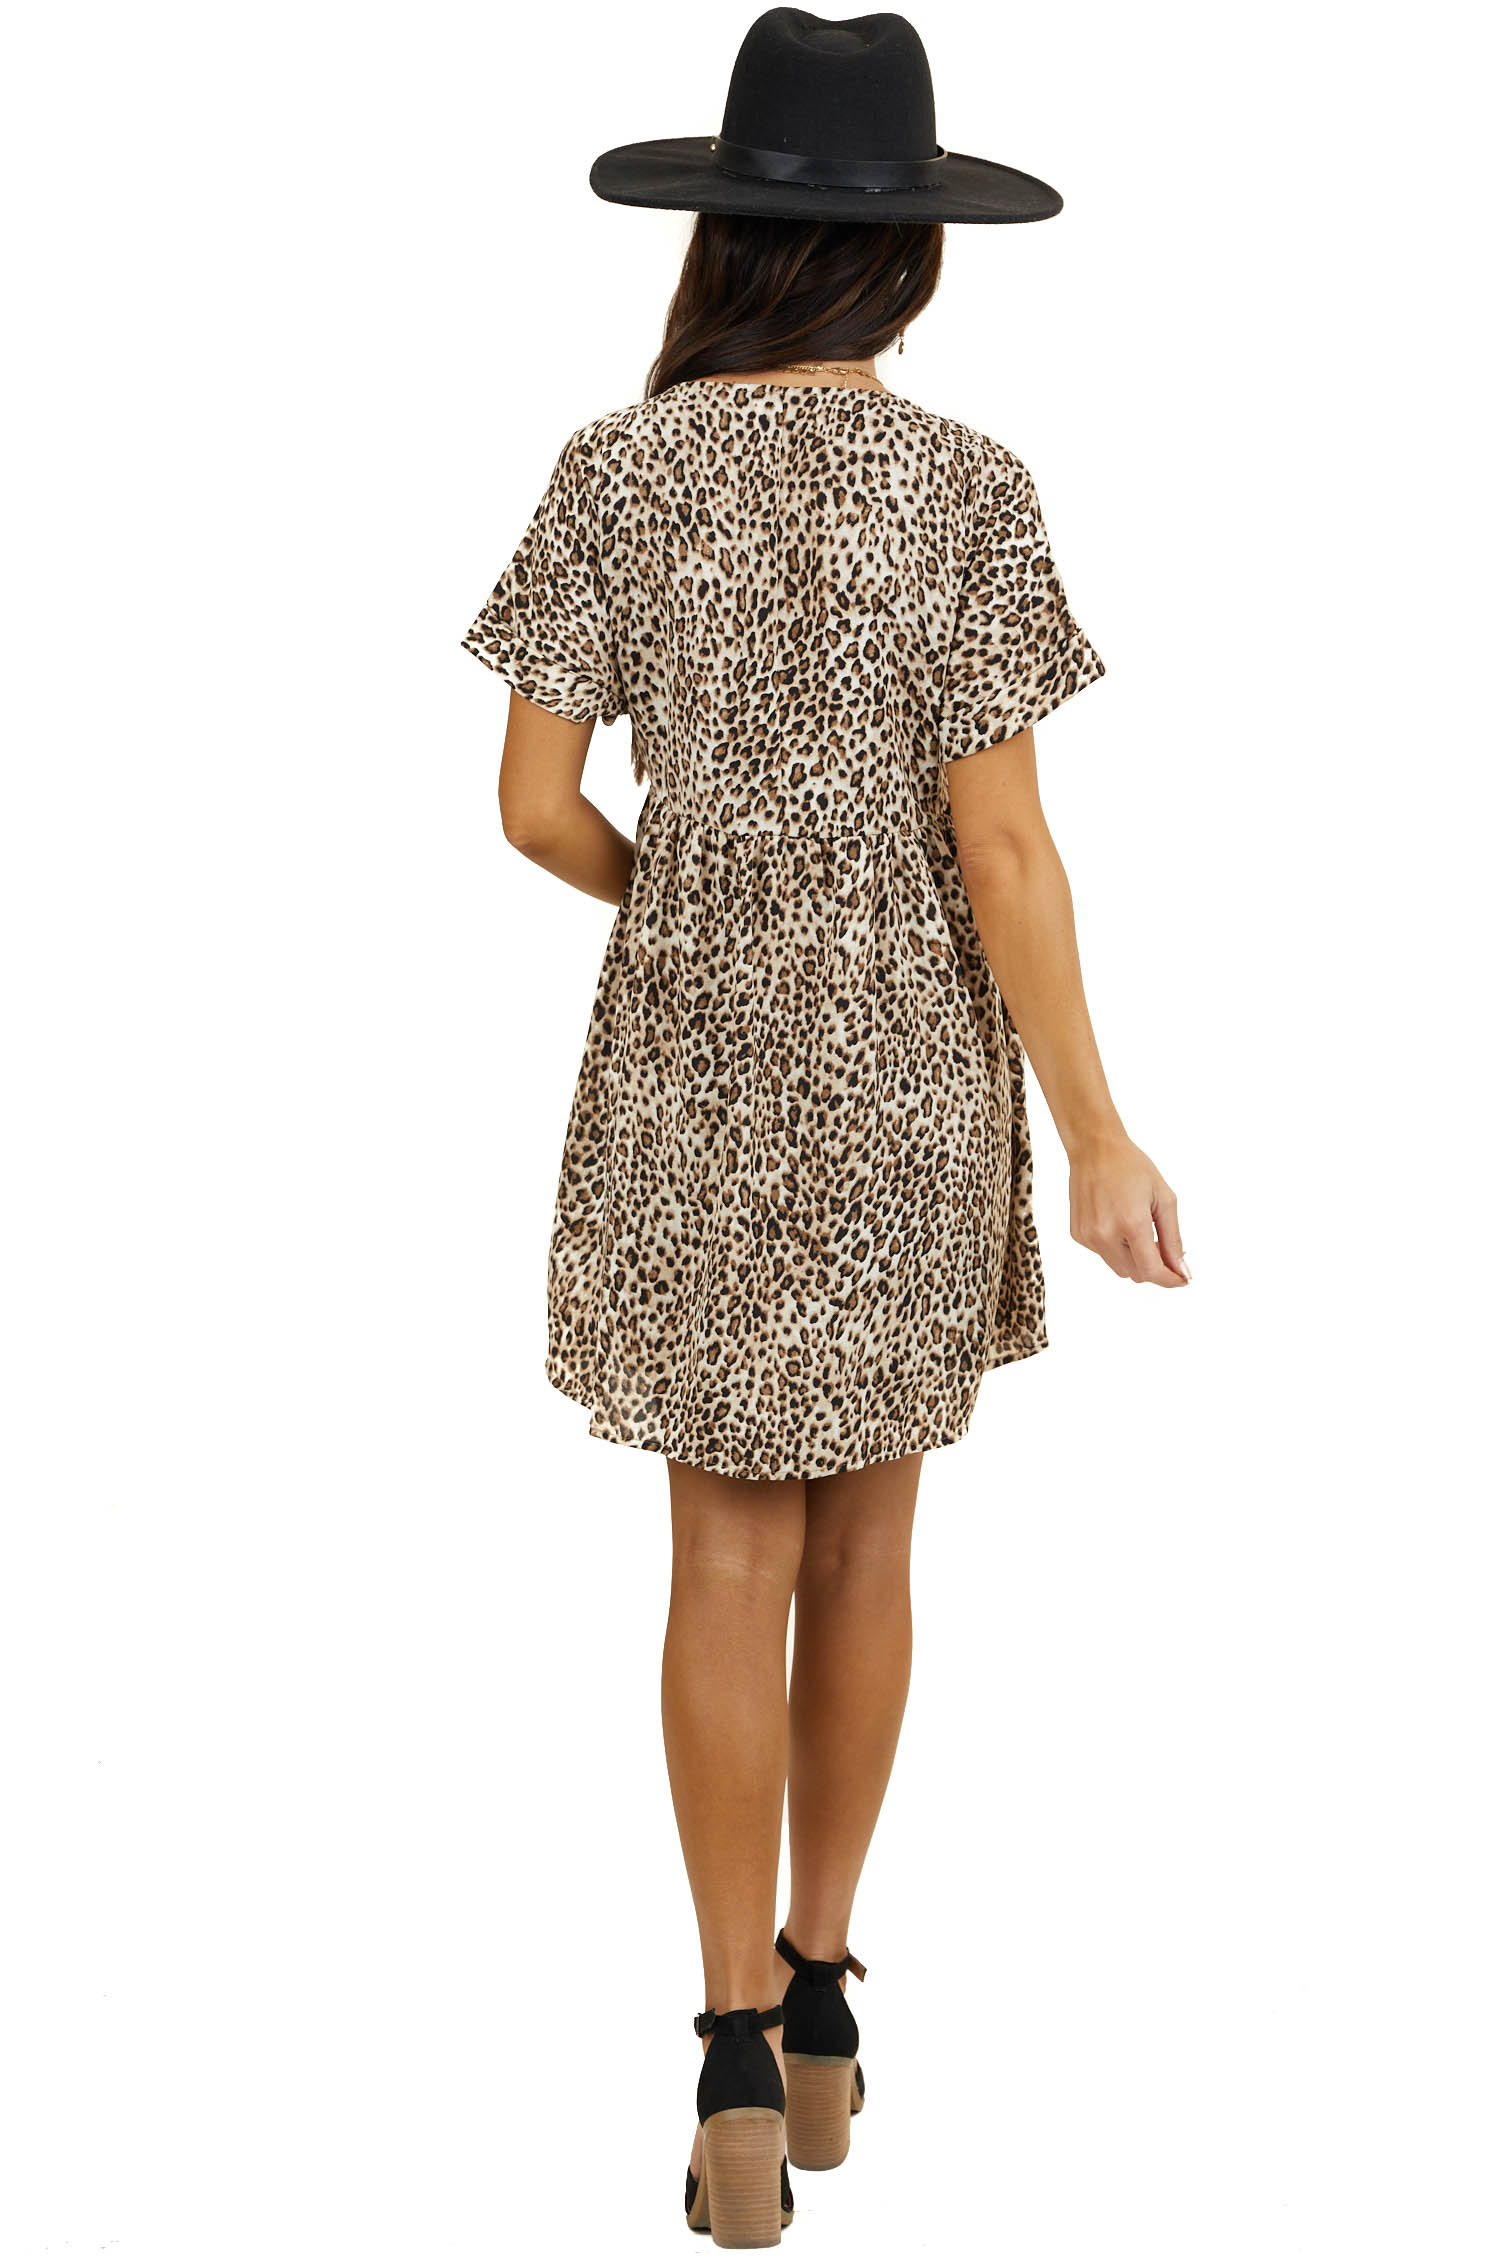 Beige Leopard Print Babydoll V Neck Mini Dress with Pockets